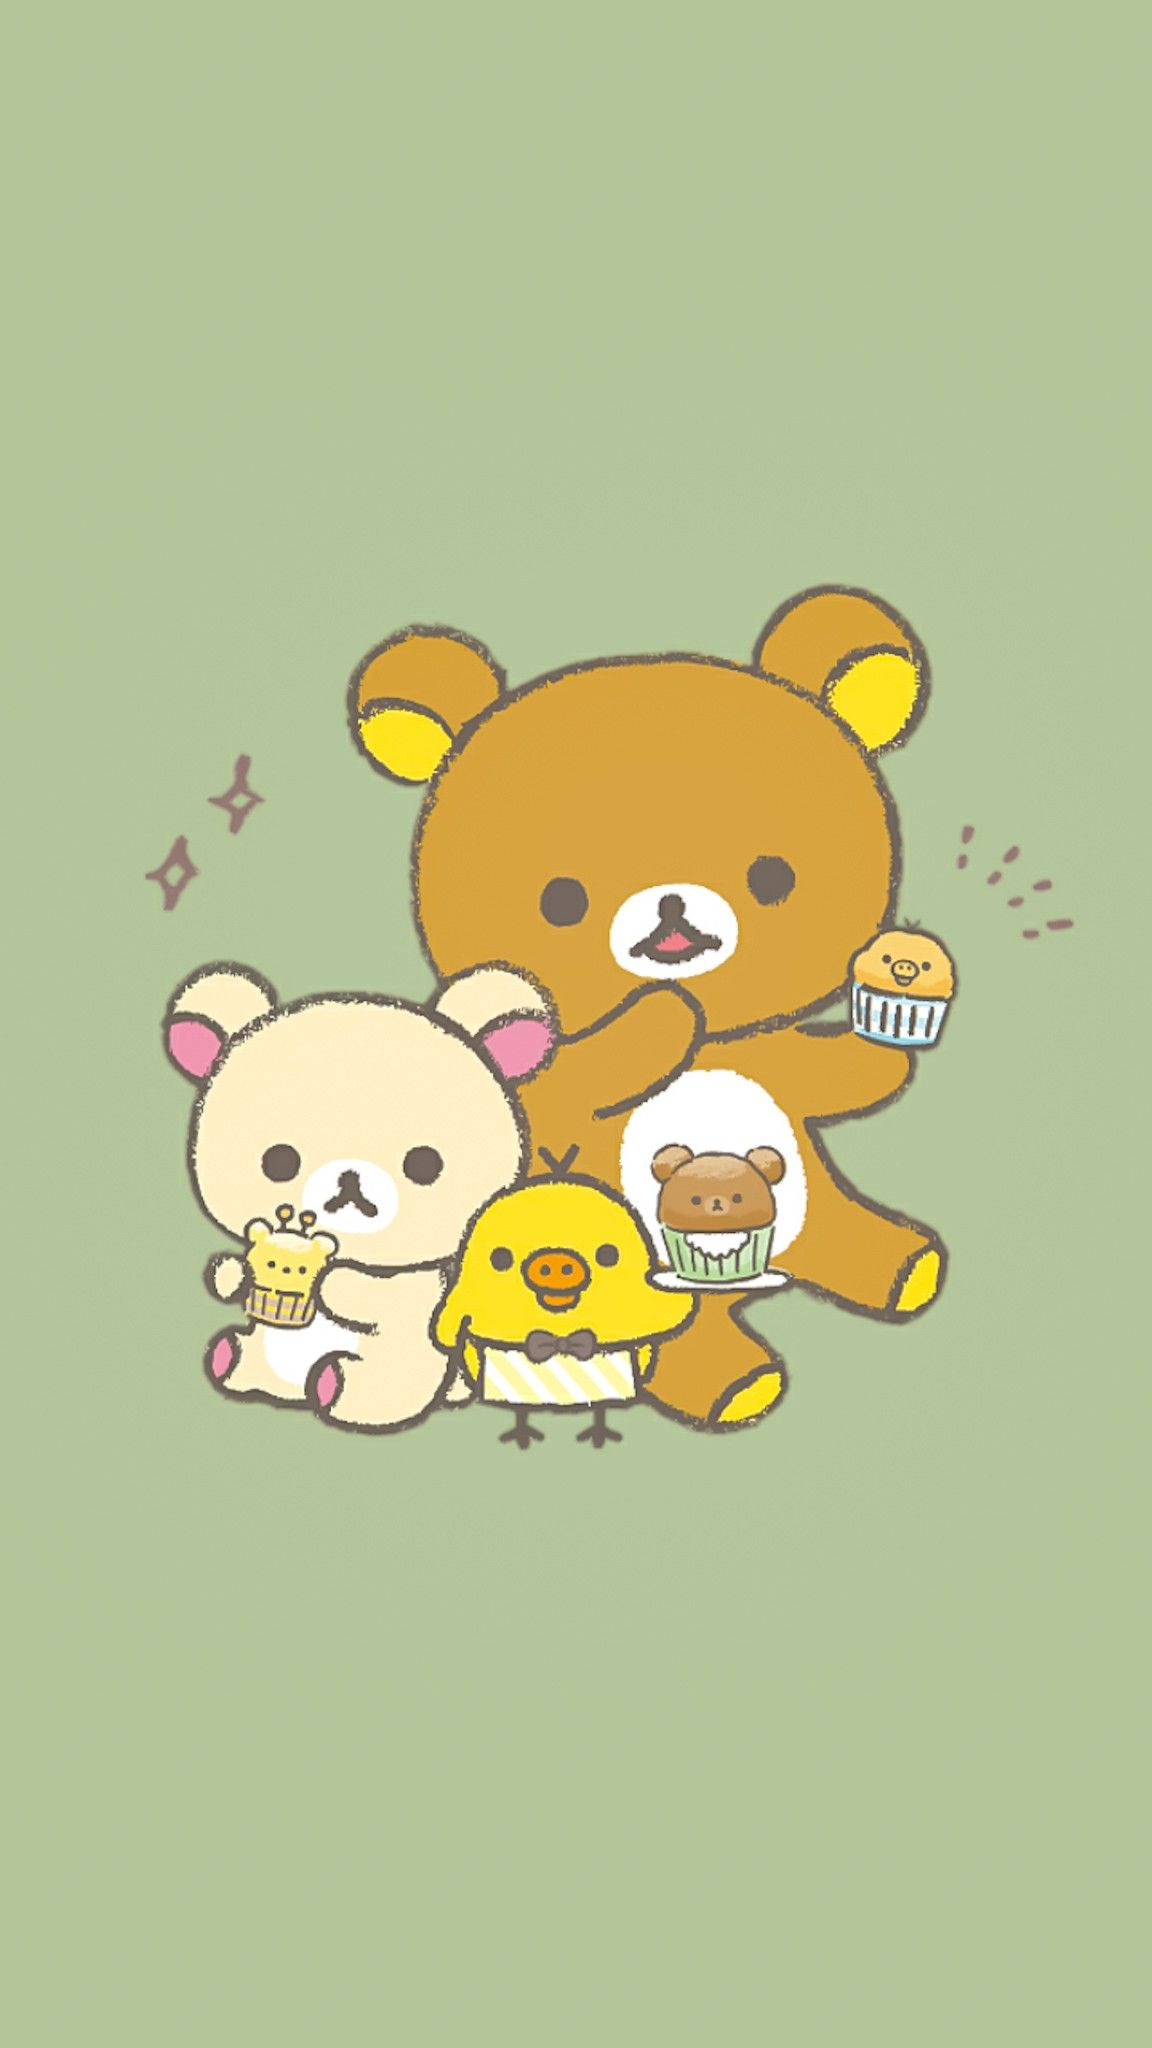 Pin by Aekkalisa on Rilakkuma BG Rilakkuma wallpaper Cartoon 1152x2048